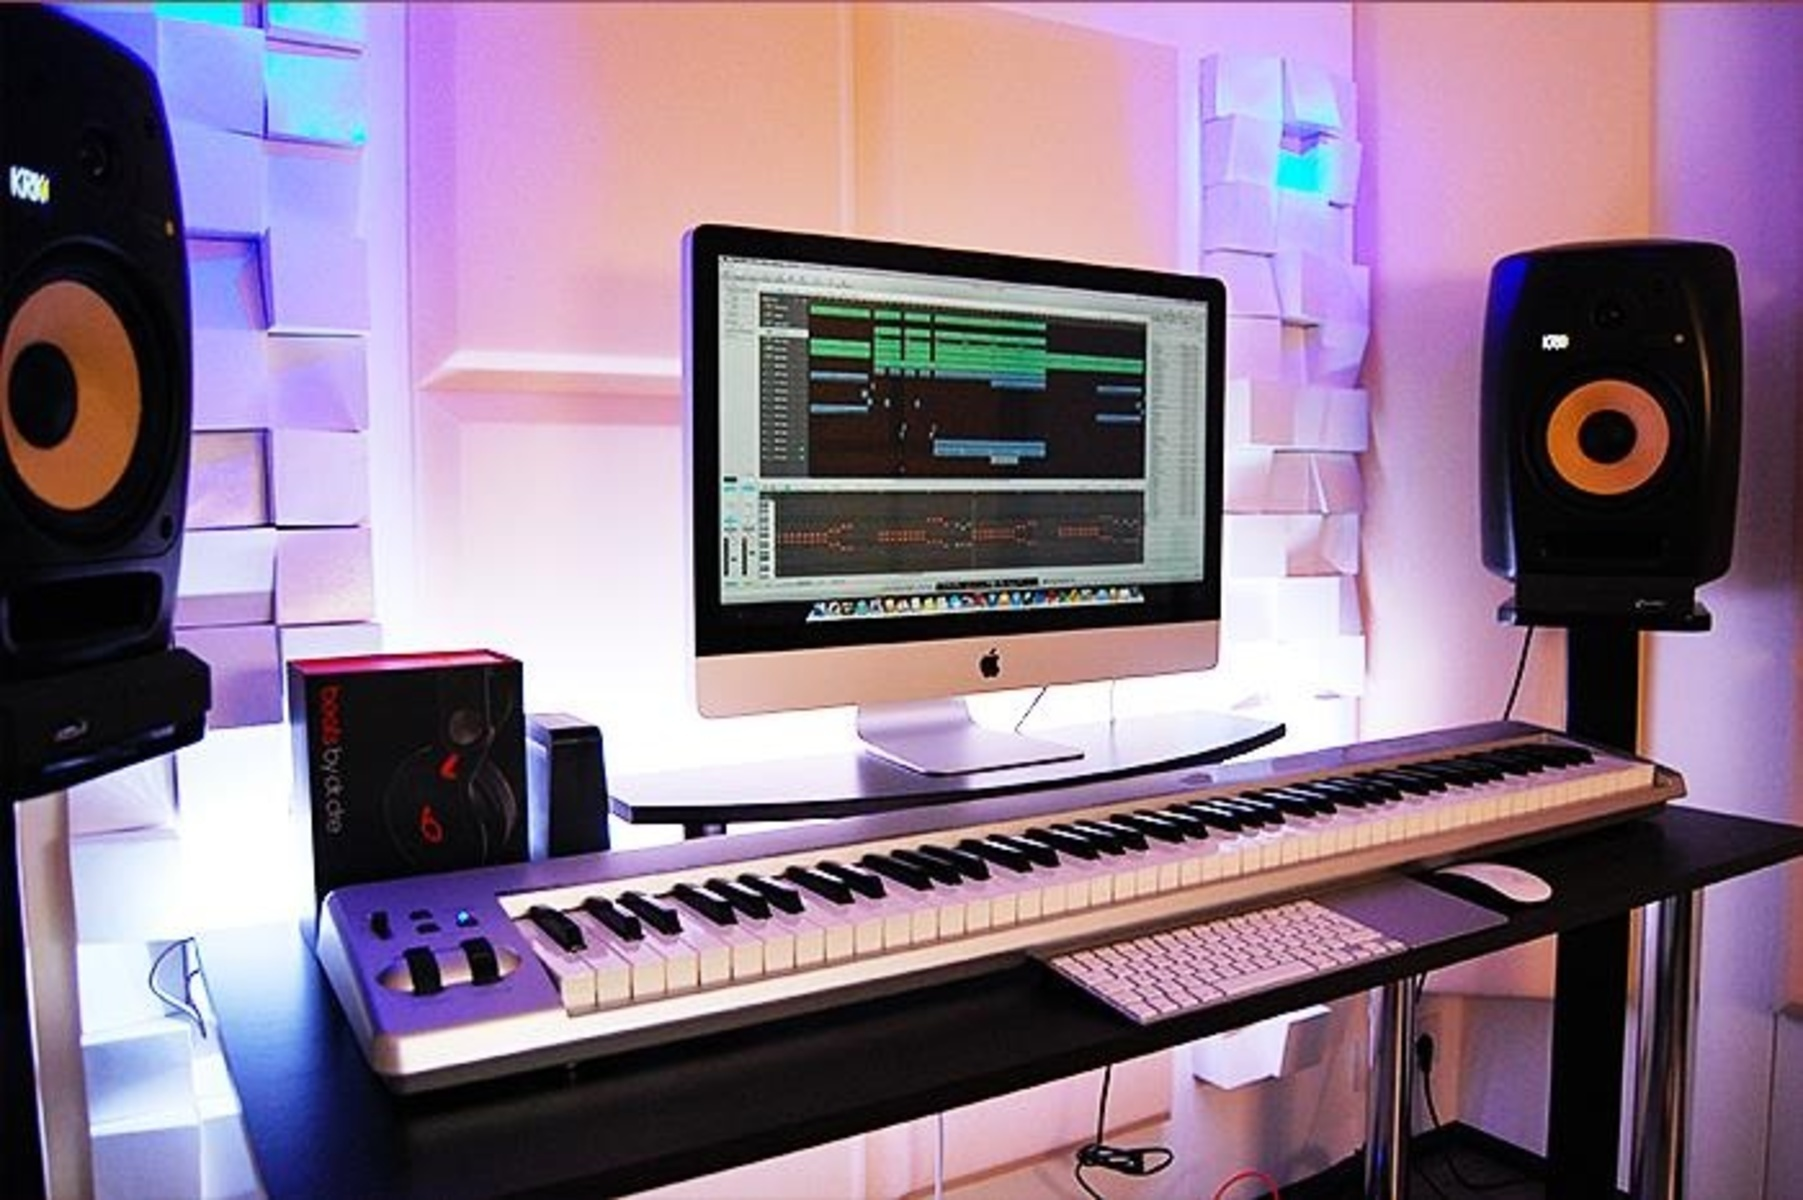 Photo of KRK VXT8 Active Studio Monitor and more gear in a studio